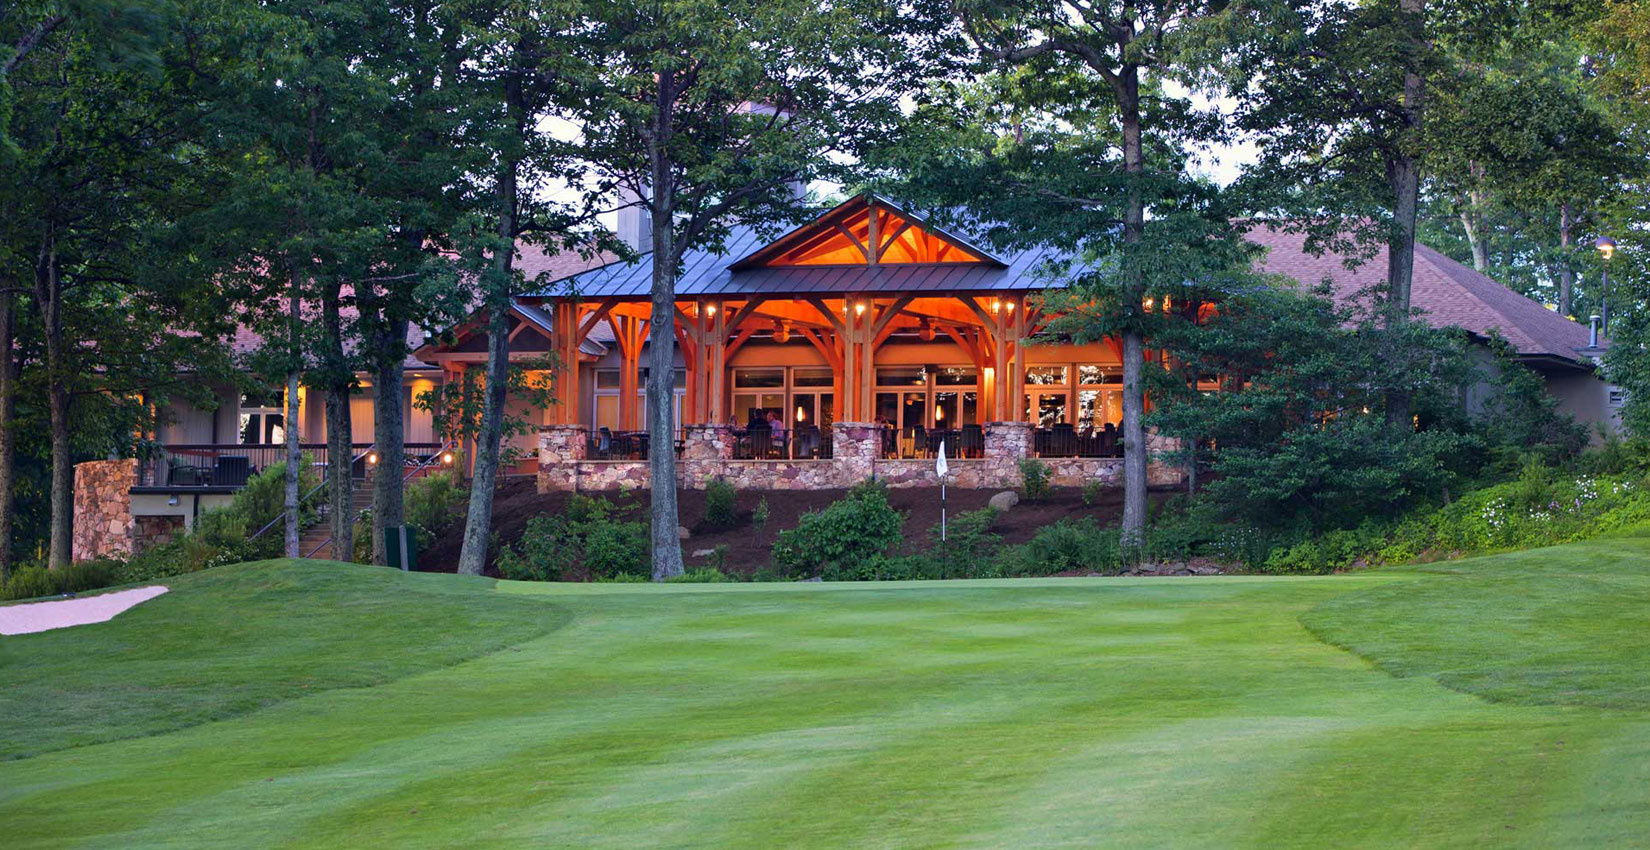 wintergreen resort: premier blue ridge mountain ski, golf, tennis